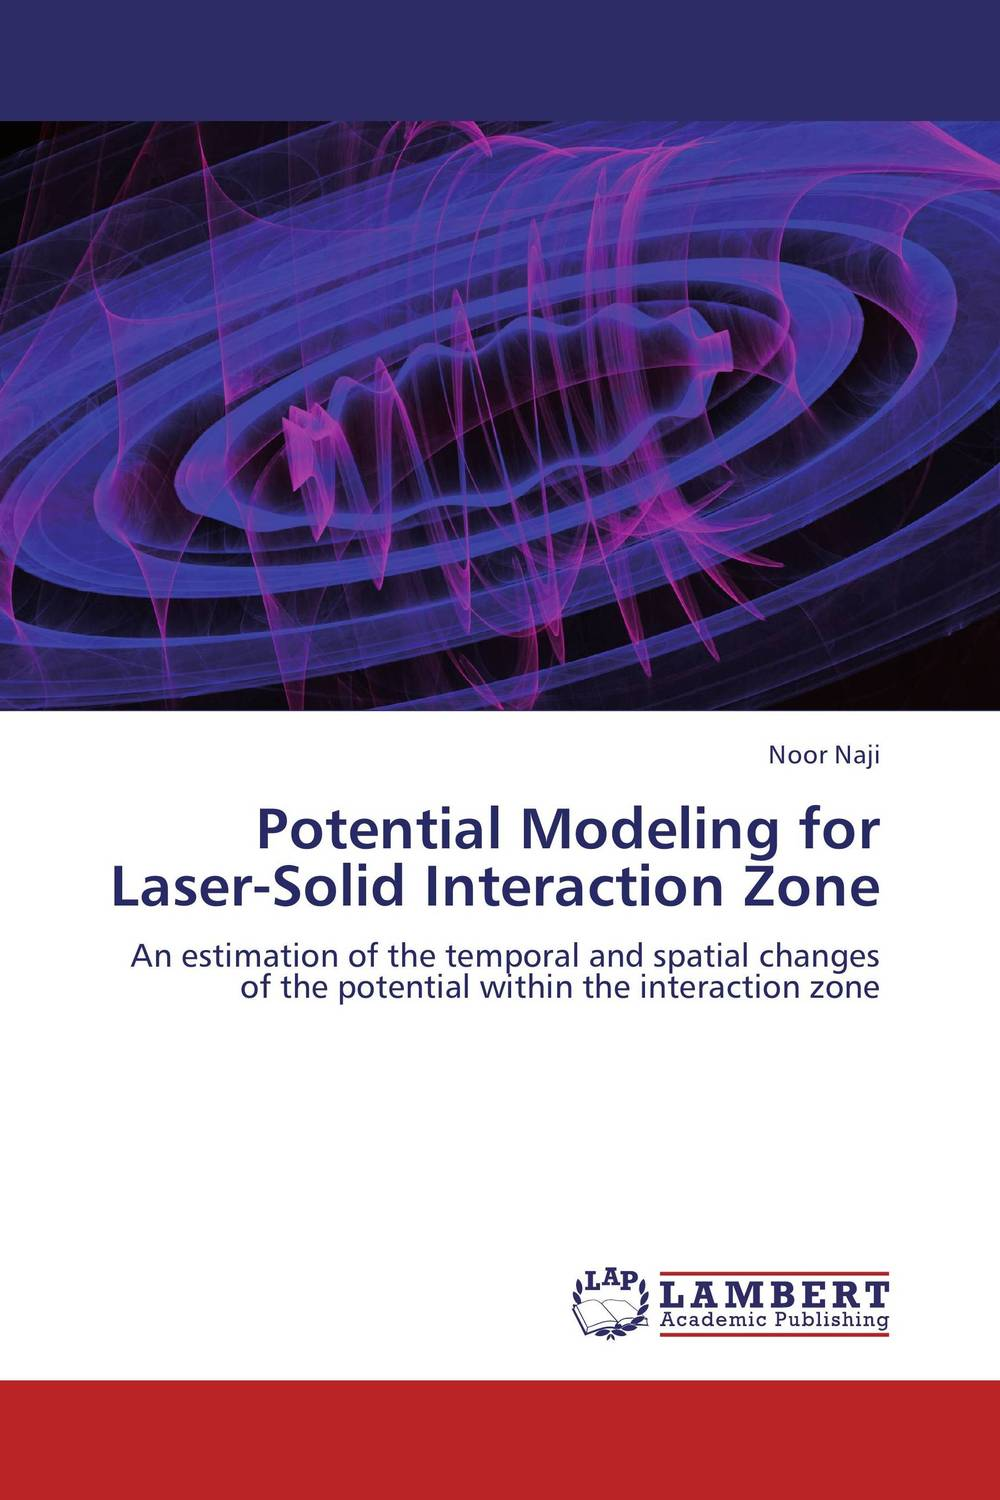 Potential Modeling for Laser-Solid Interaction Zone sociologies of interaction